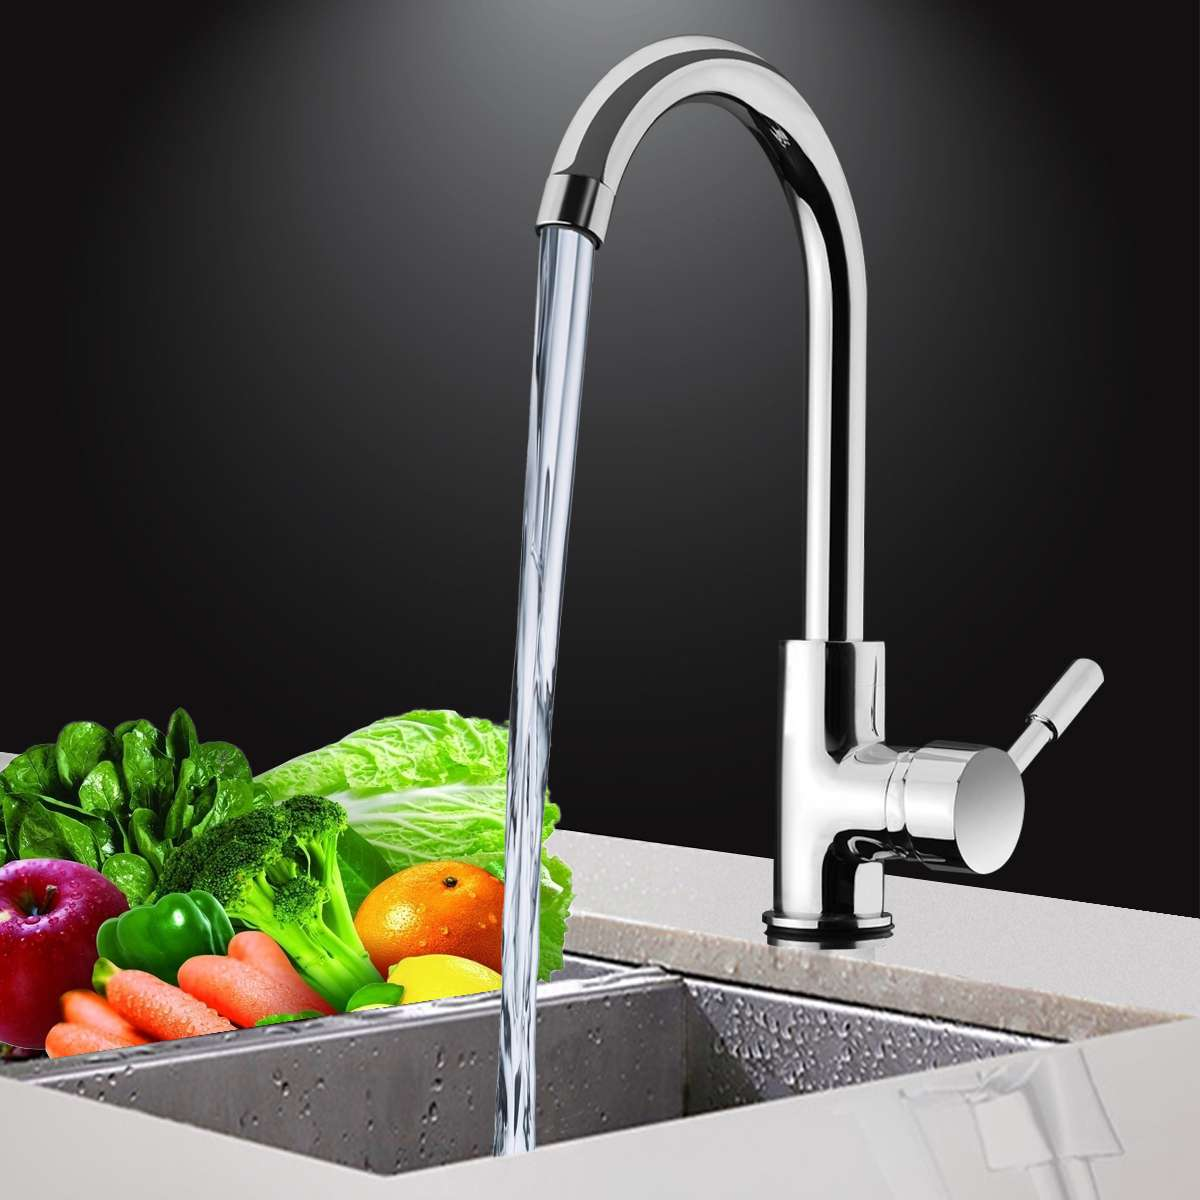 Kitchen 360Degree Rotatable Spout Sink Basin Water Faucet Curved Mixer Tap Bathroom Hot And Cold Single Handle Tap Faucet